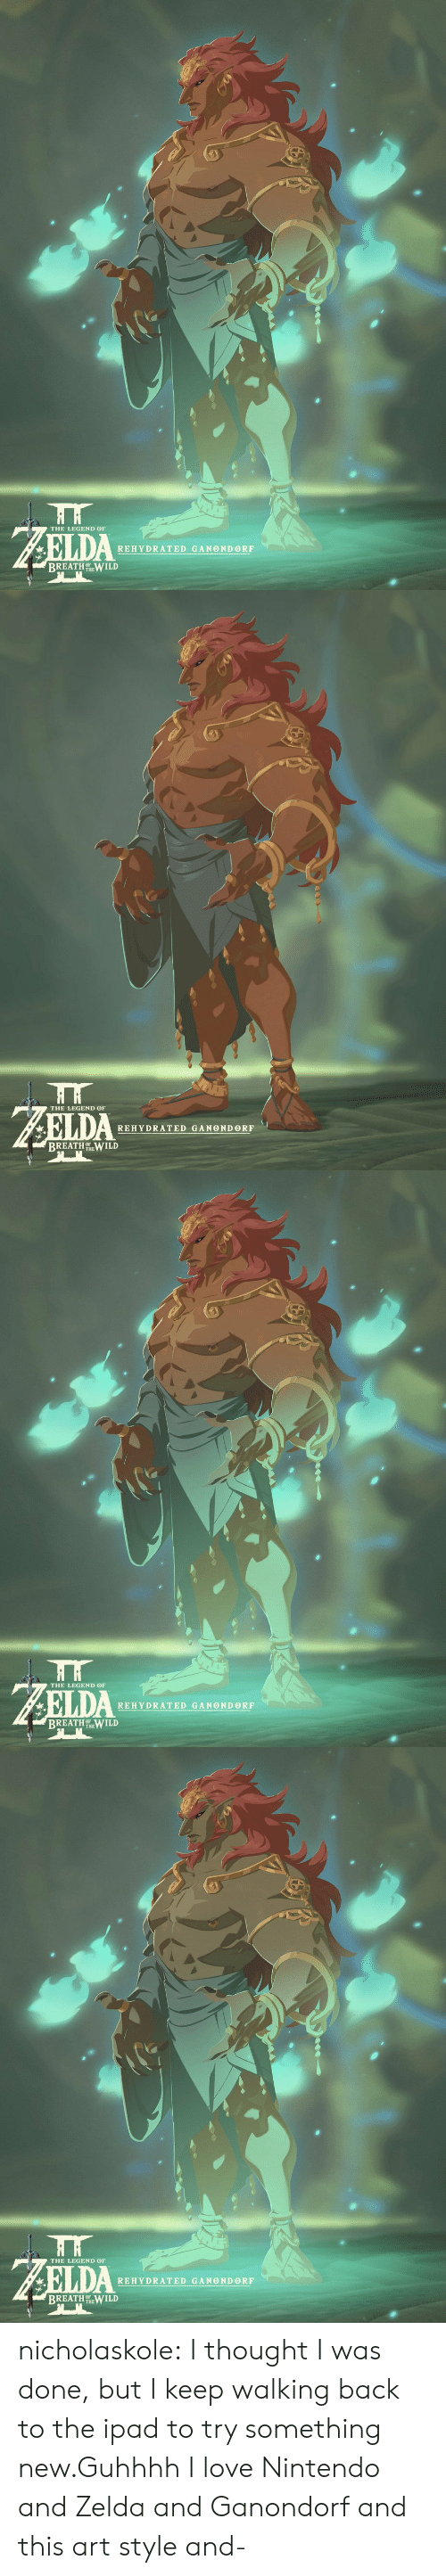 Zelda: THE LEGEND OF  REHYDRATED GANONDORF  BREATHOWILD   HH  THE LEGEND OF  REHYDRATED GANOND ORF  BREATH TEILD   THE LEGEND OF  REHYDRATED GANONDORF  BREATH OT WILD   THE LEGEND OF  REHYDRATED GANOND ORF  BREATH ILD nicholaskole:  I thought I was done, but I keep walking back to the ipad to try something new.Guhhhh I love Nintendo and Zelda and Ganondorf and this art style and-